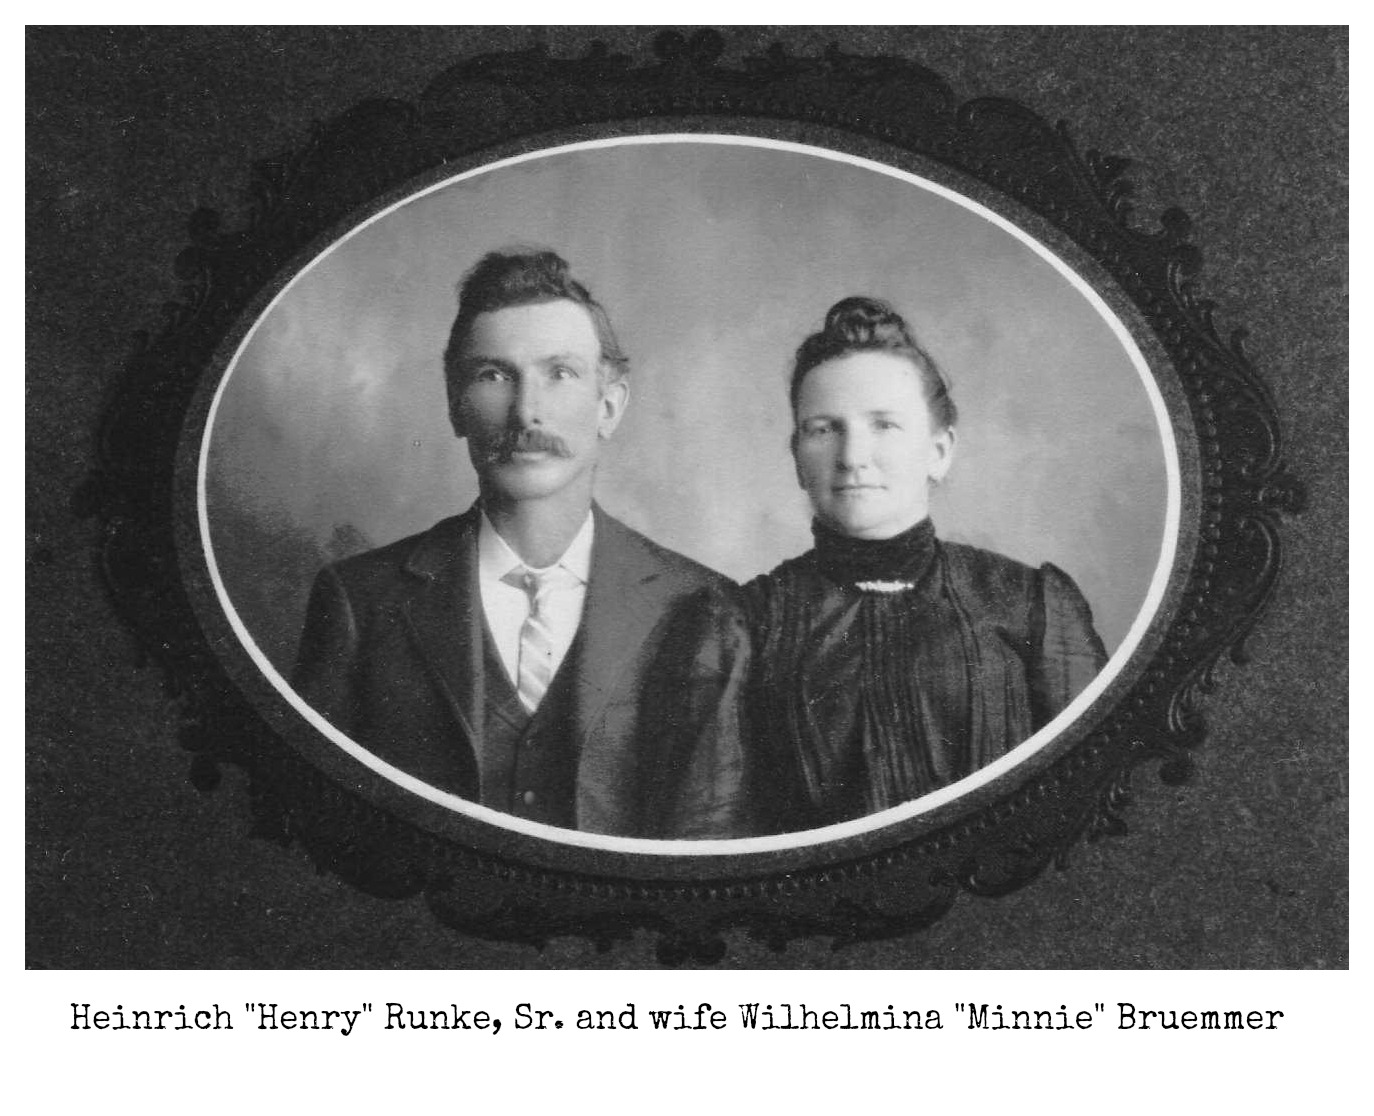 Henry and Wilhelmina Minnie Bruemmer